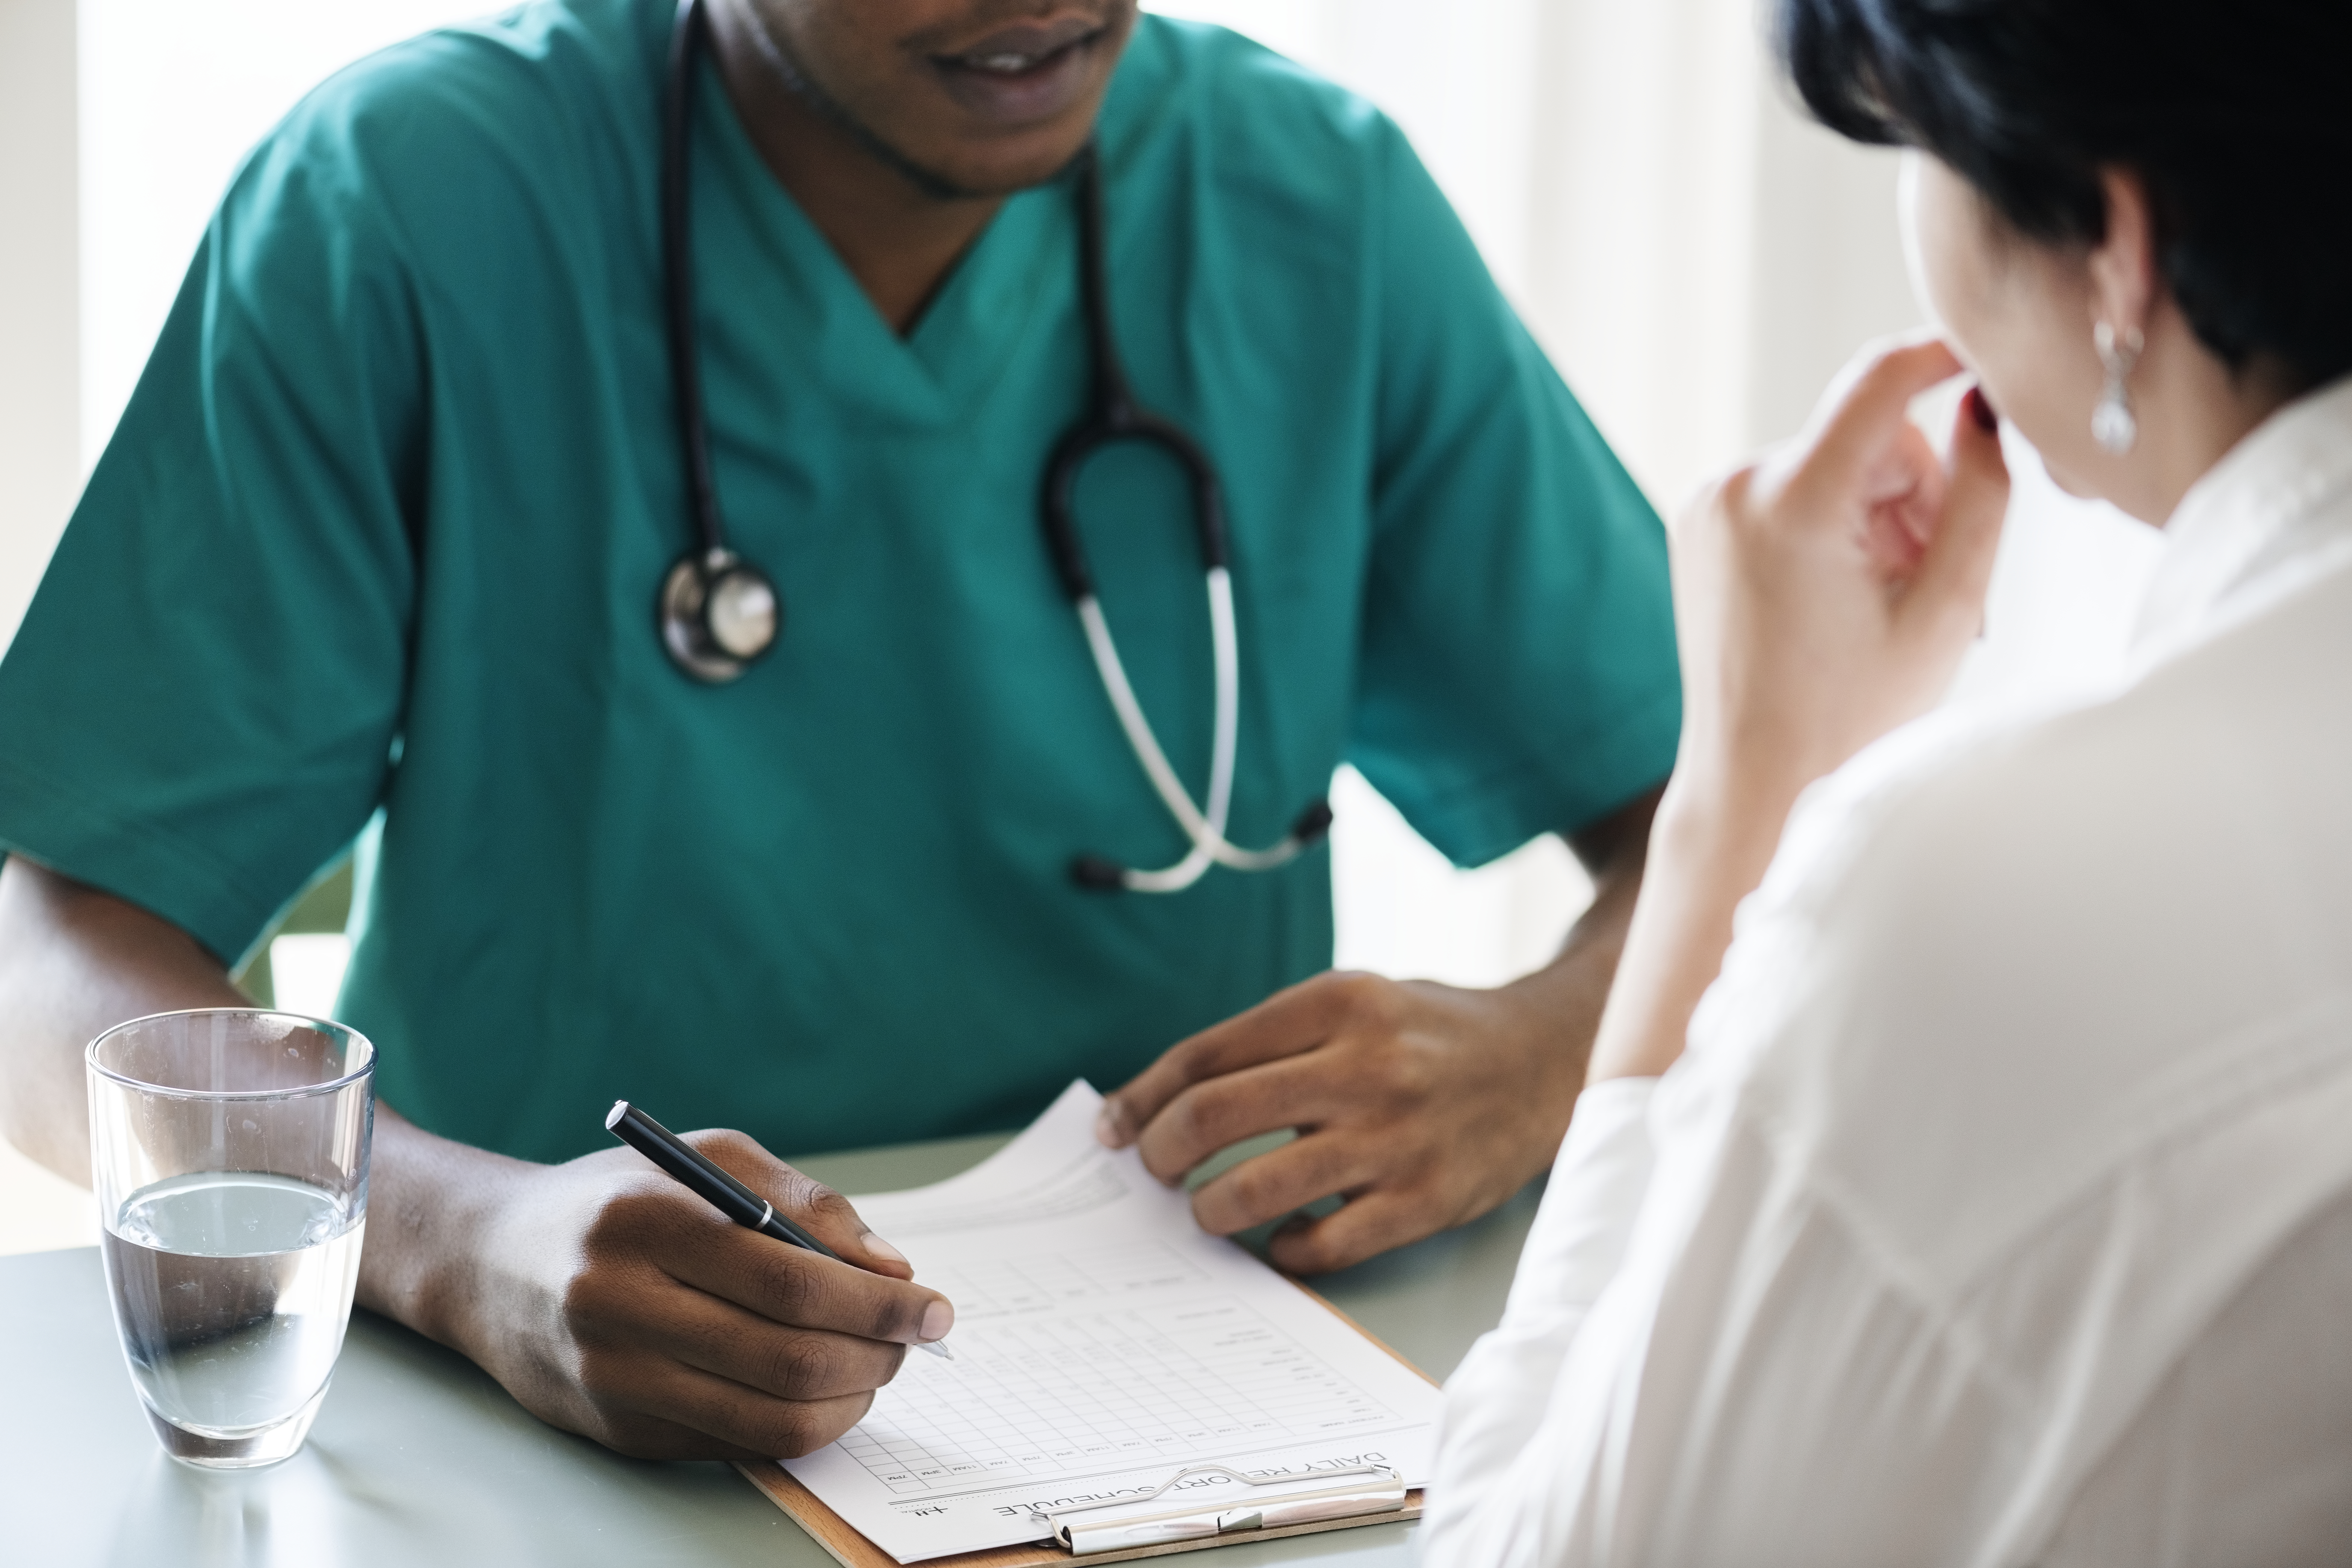 Doctor diagnose patient symptoms at the hospital